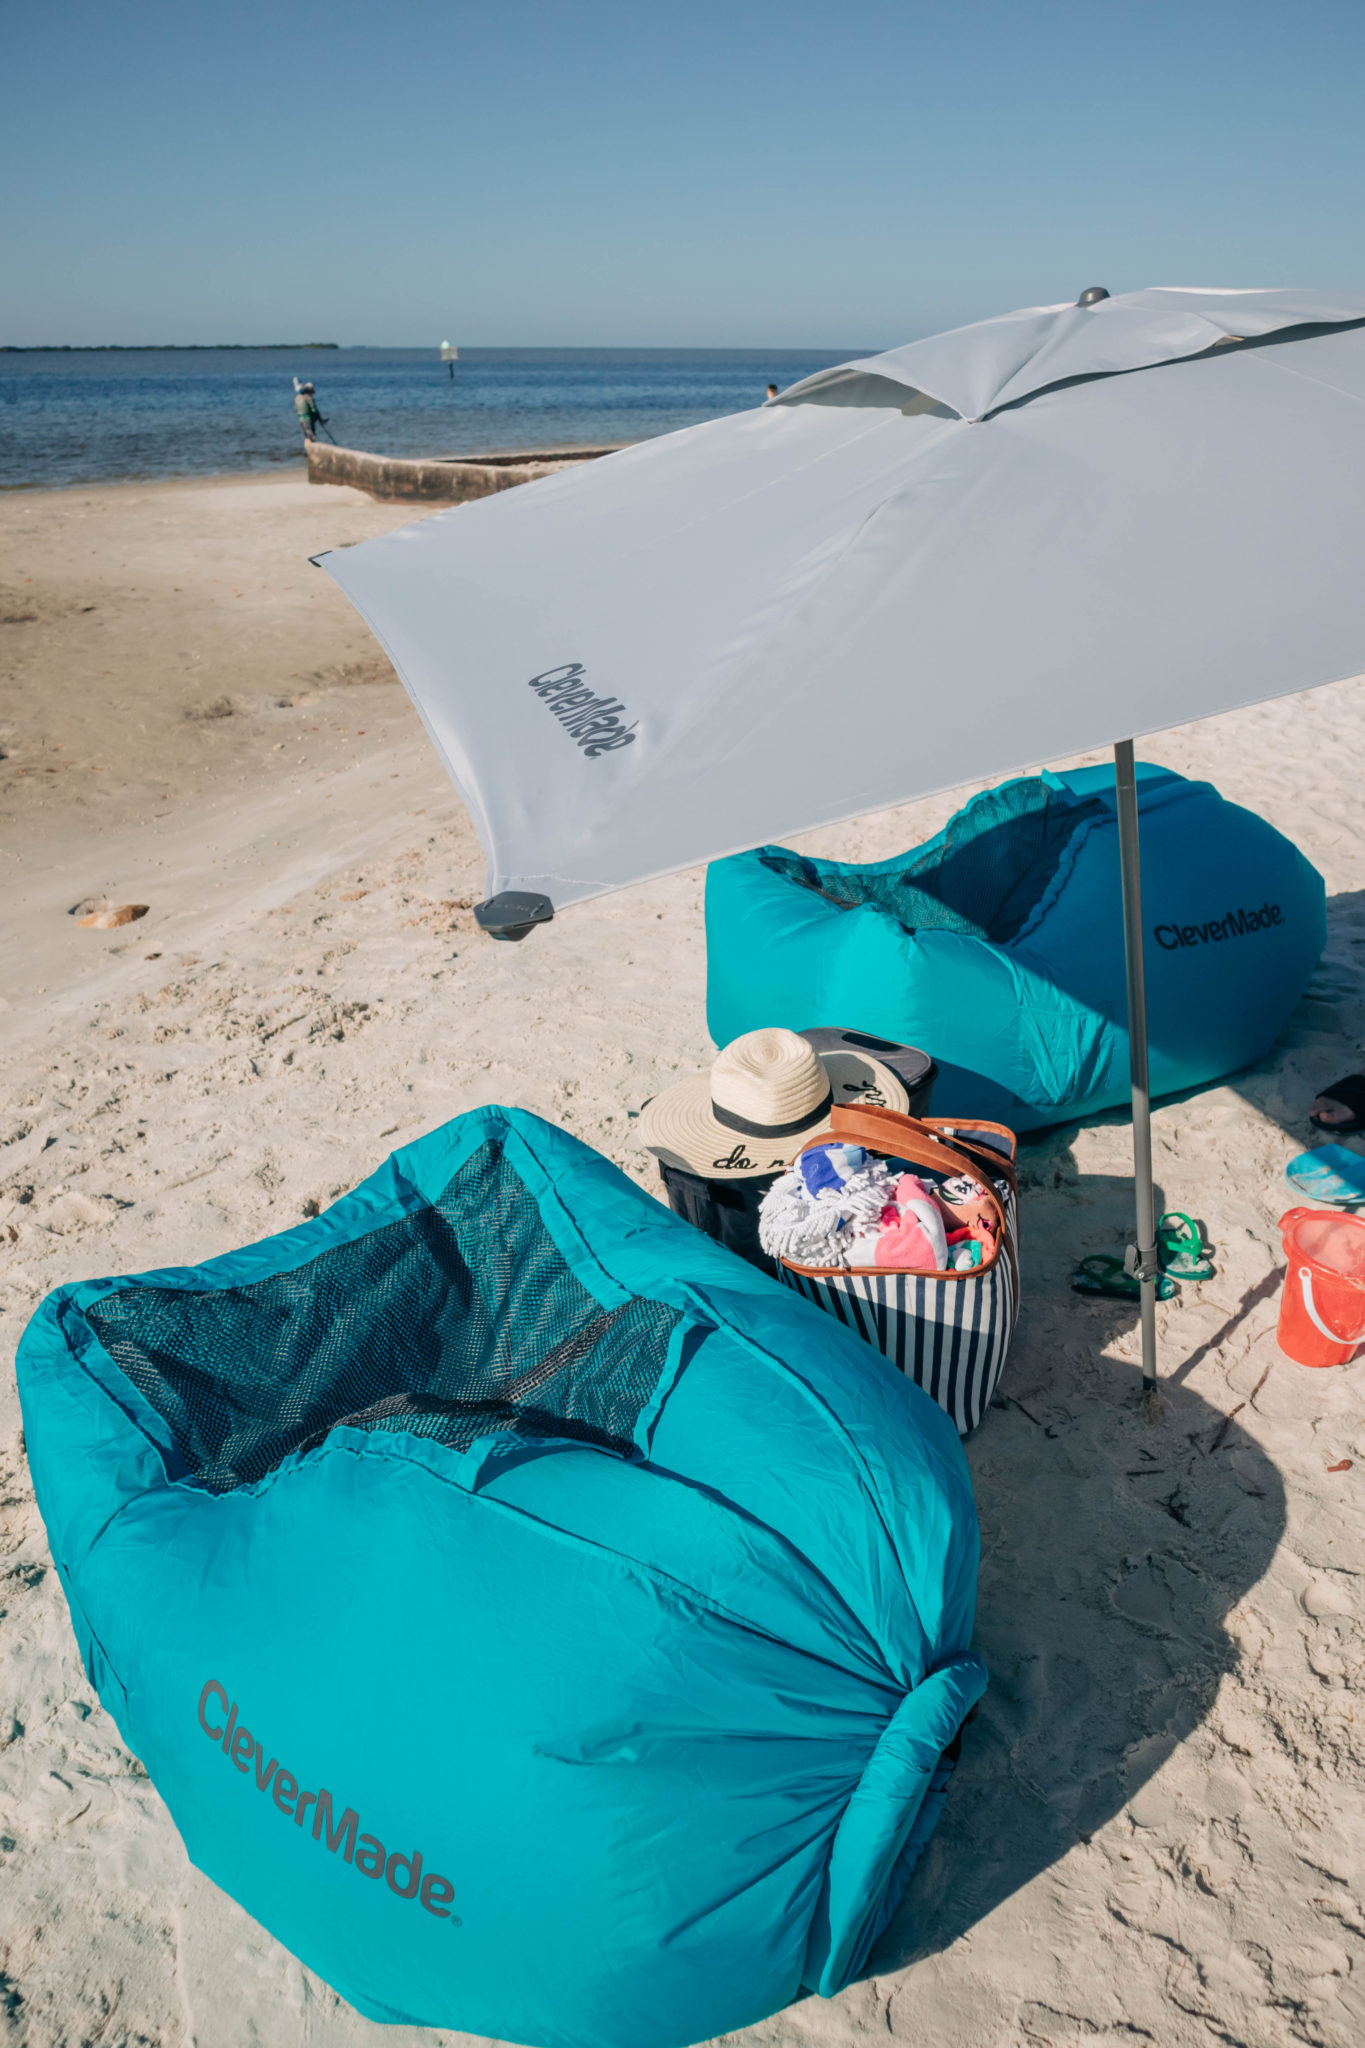 Beach Umbrella that stands or lays down - Tampa Lifestyle and Parenting Blogger, Crazy LIfe with Littles